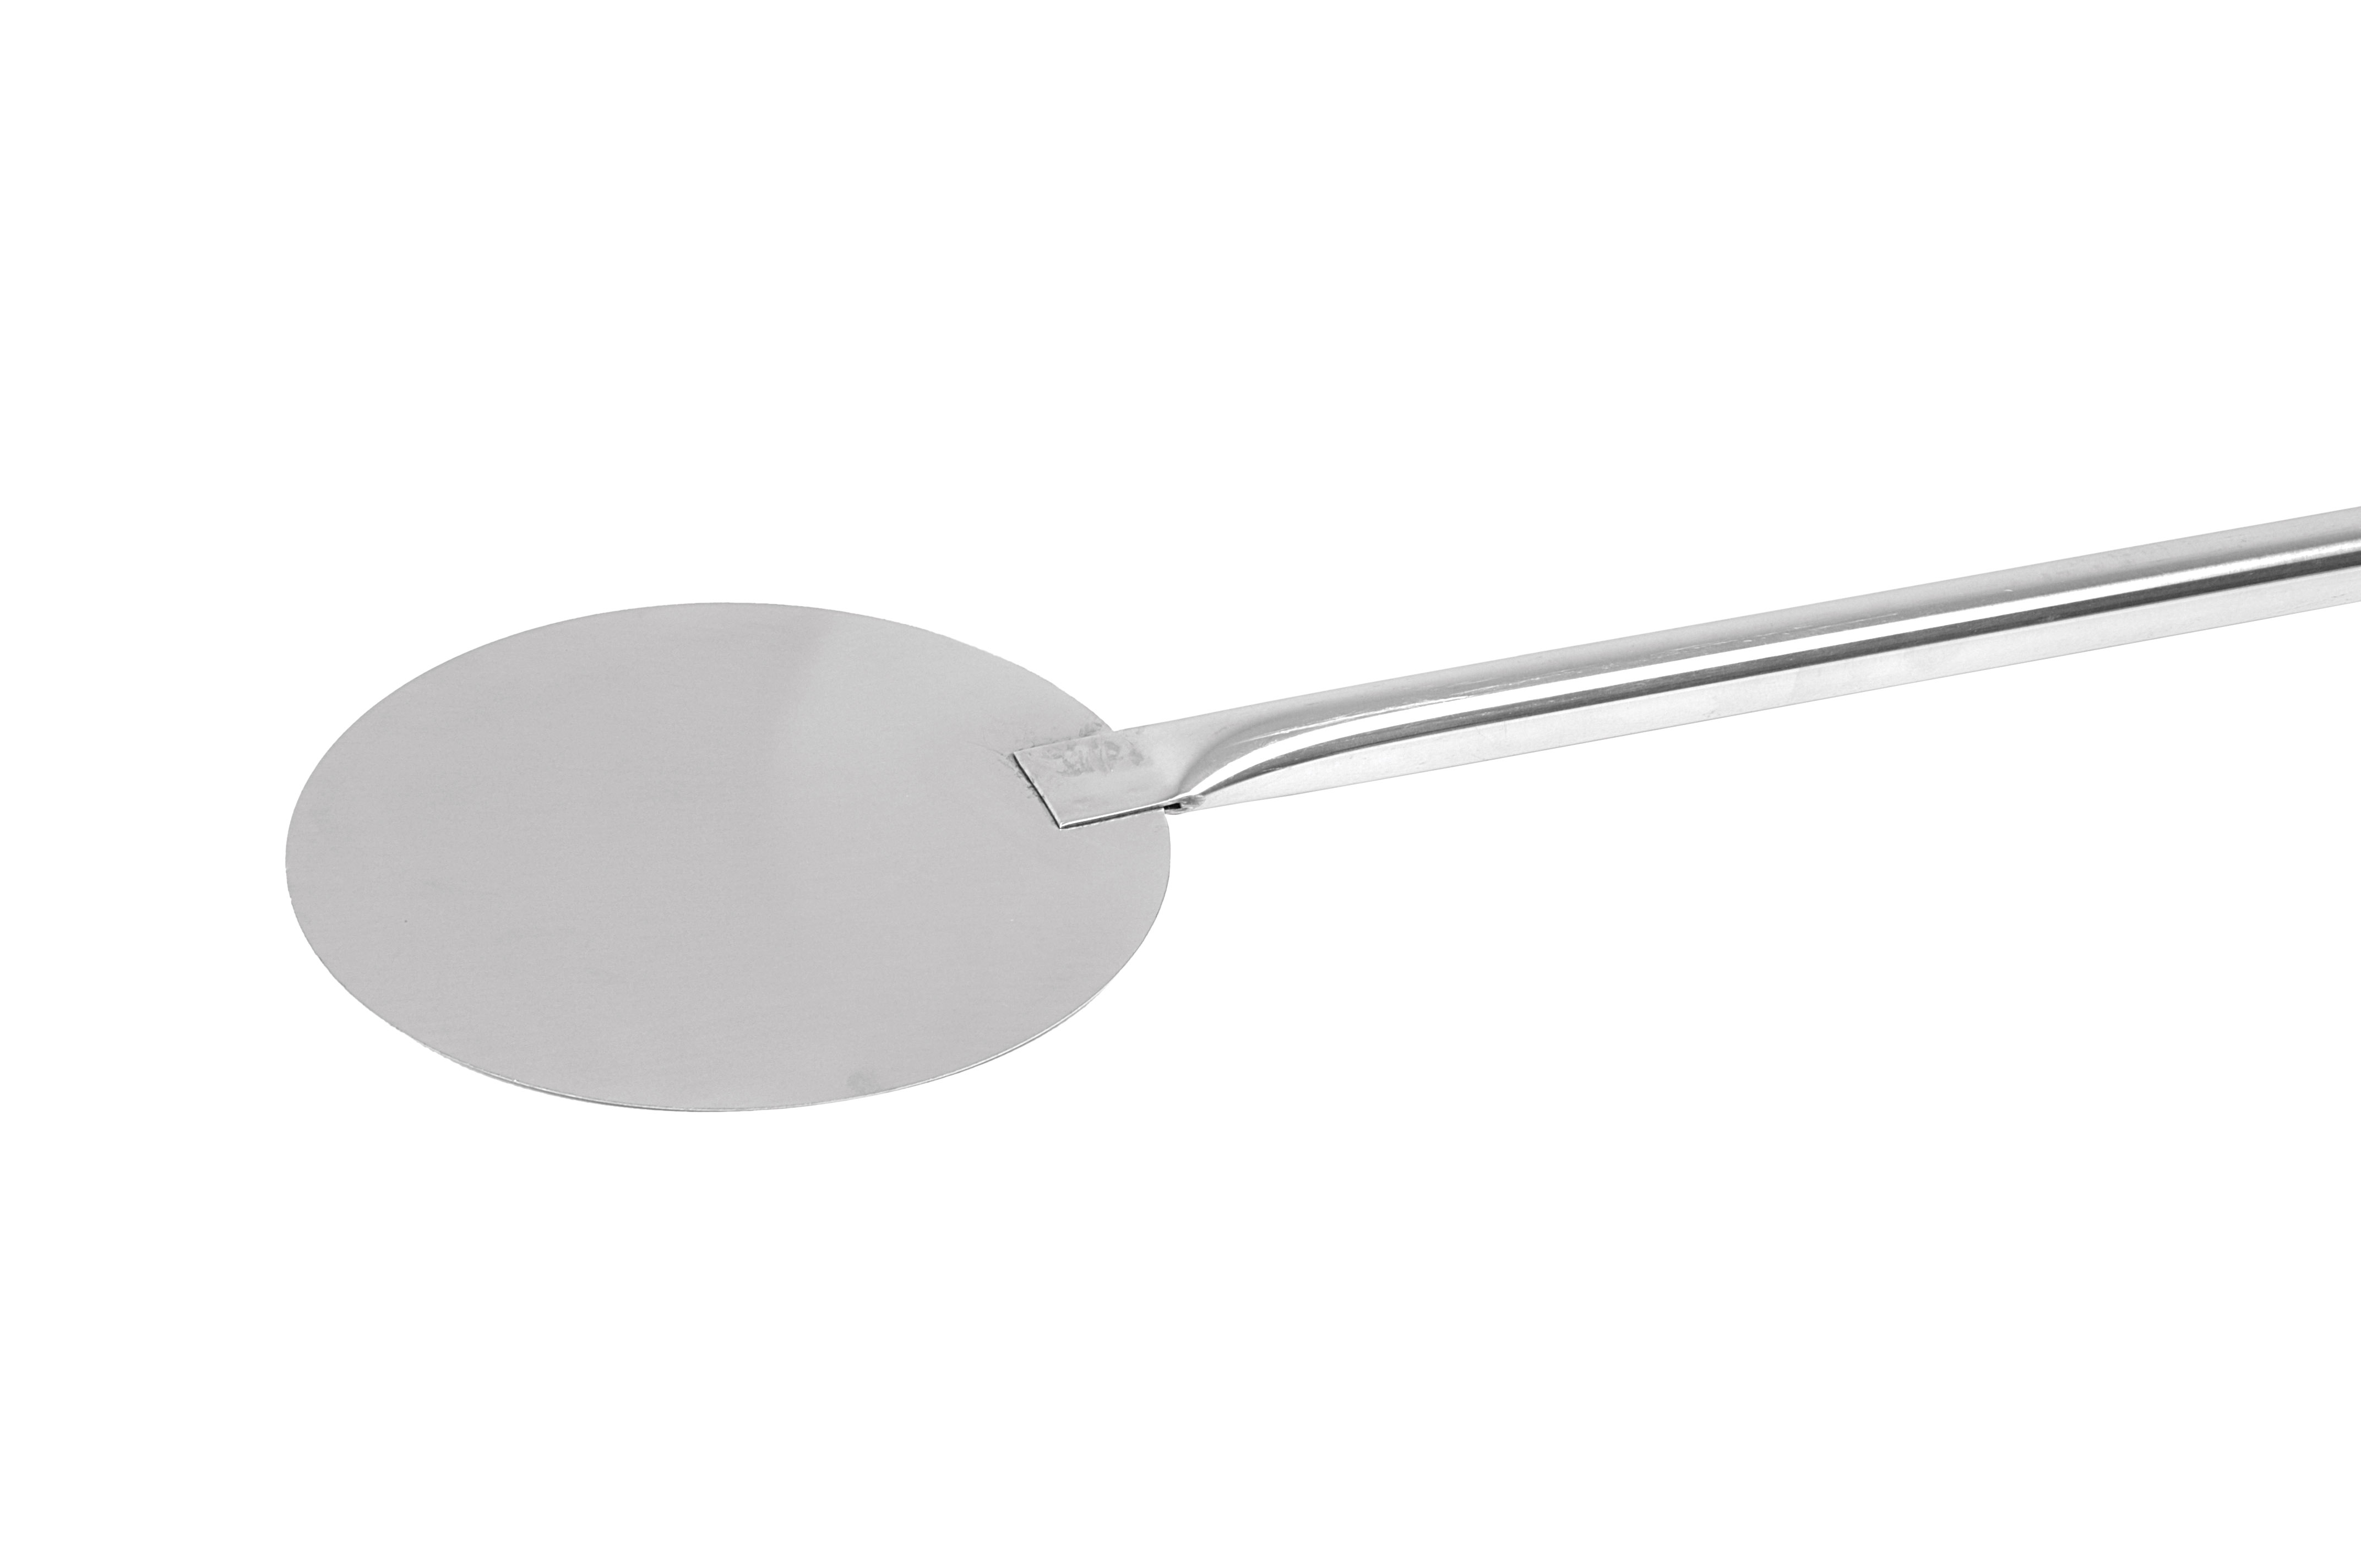 PIZZA SCOOP S/STEEL- ROUND HEAD 1500MM X 215 MM